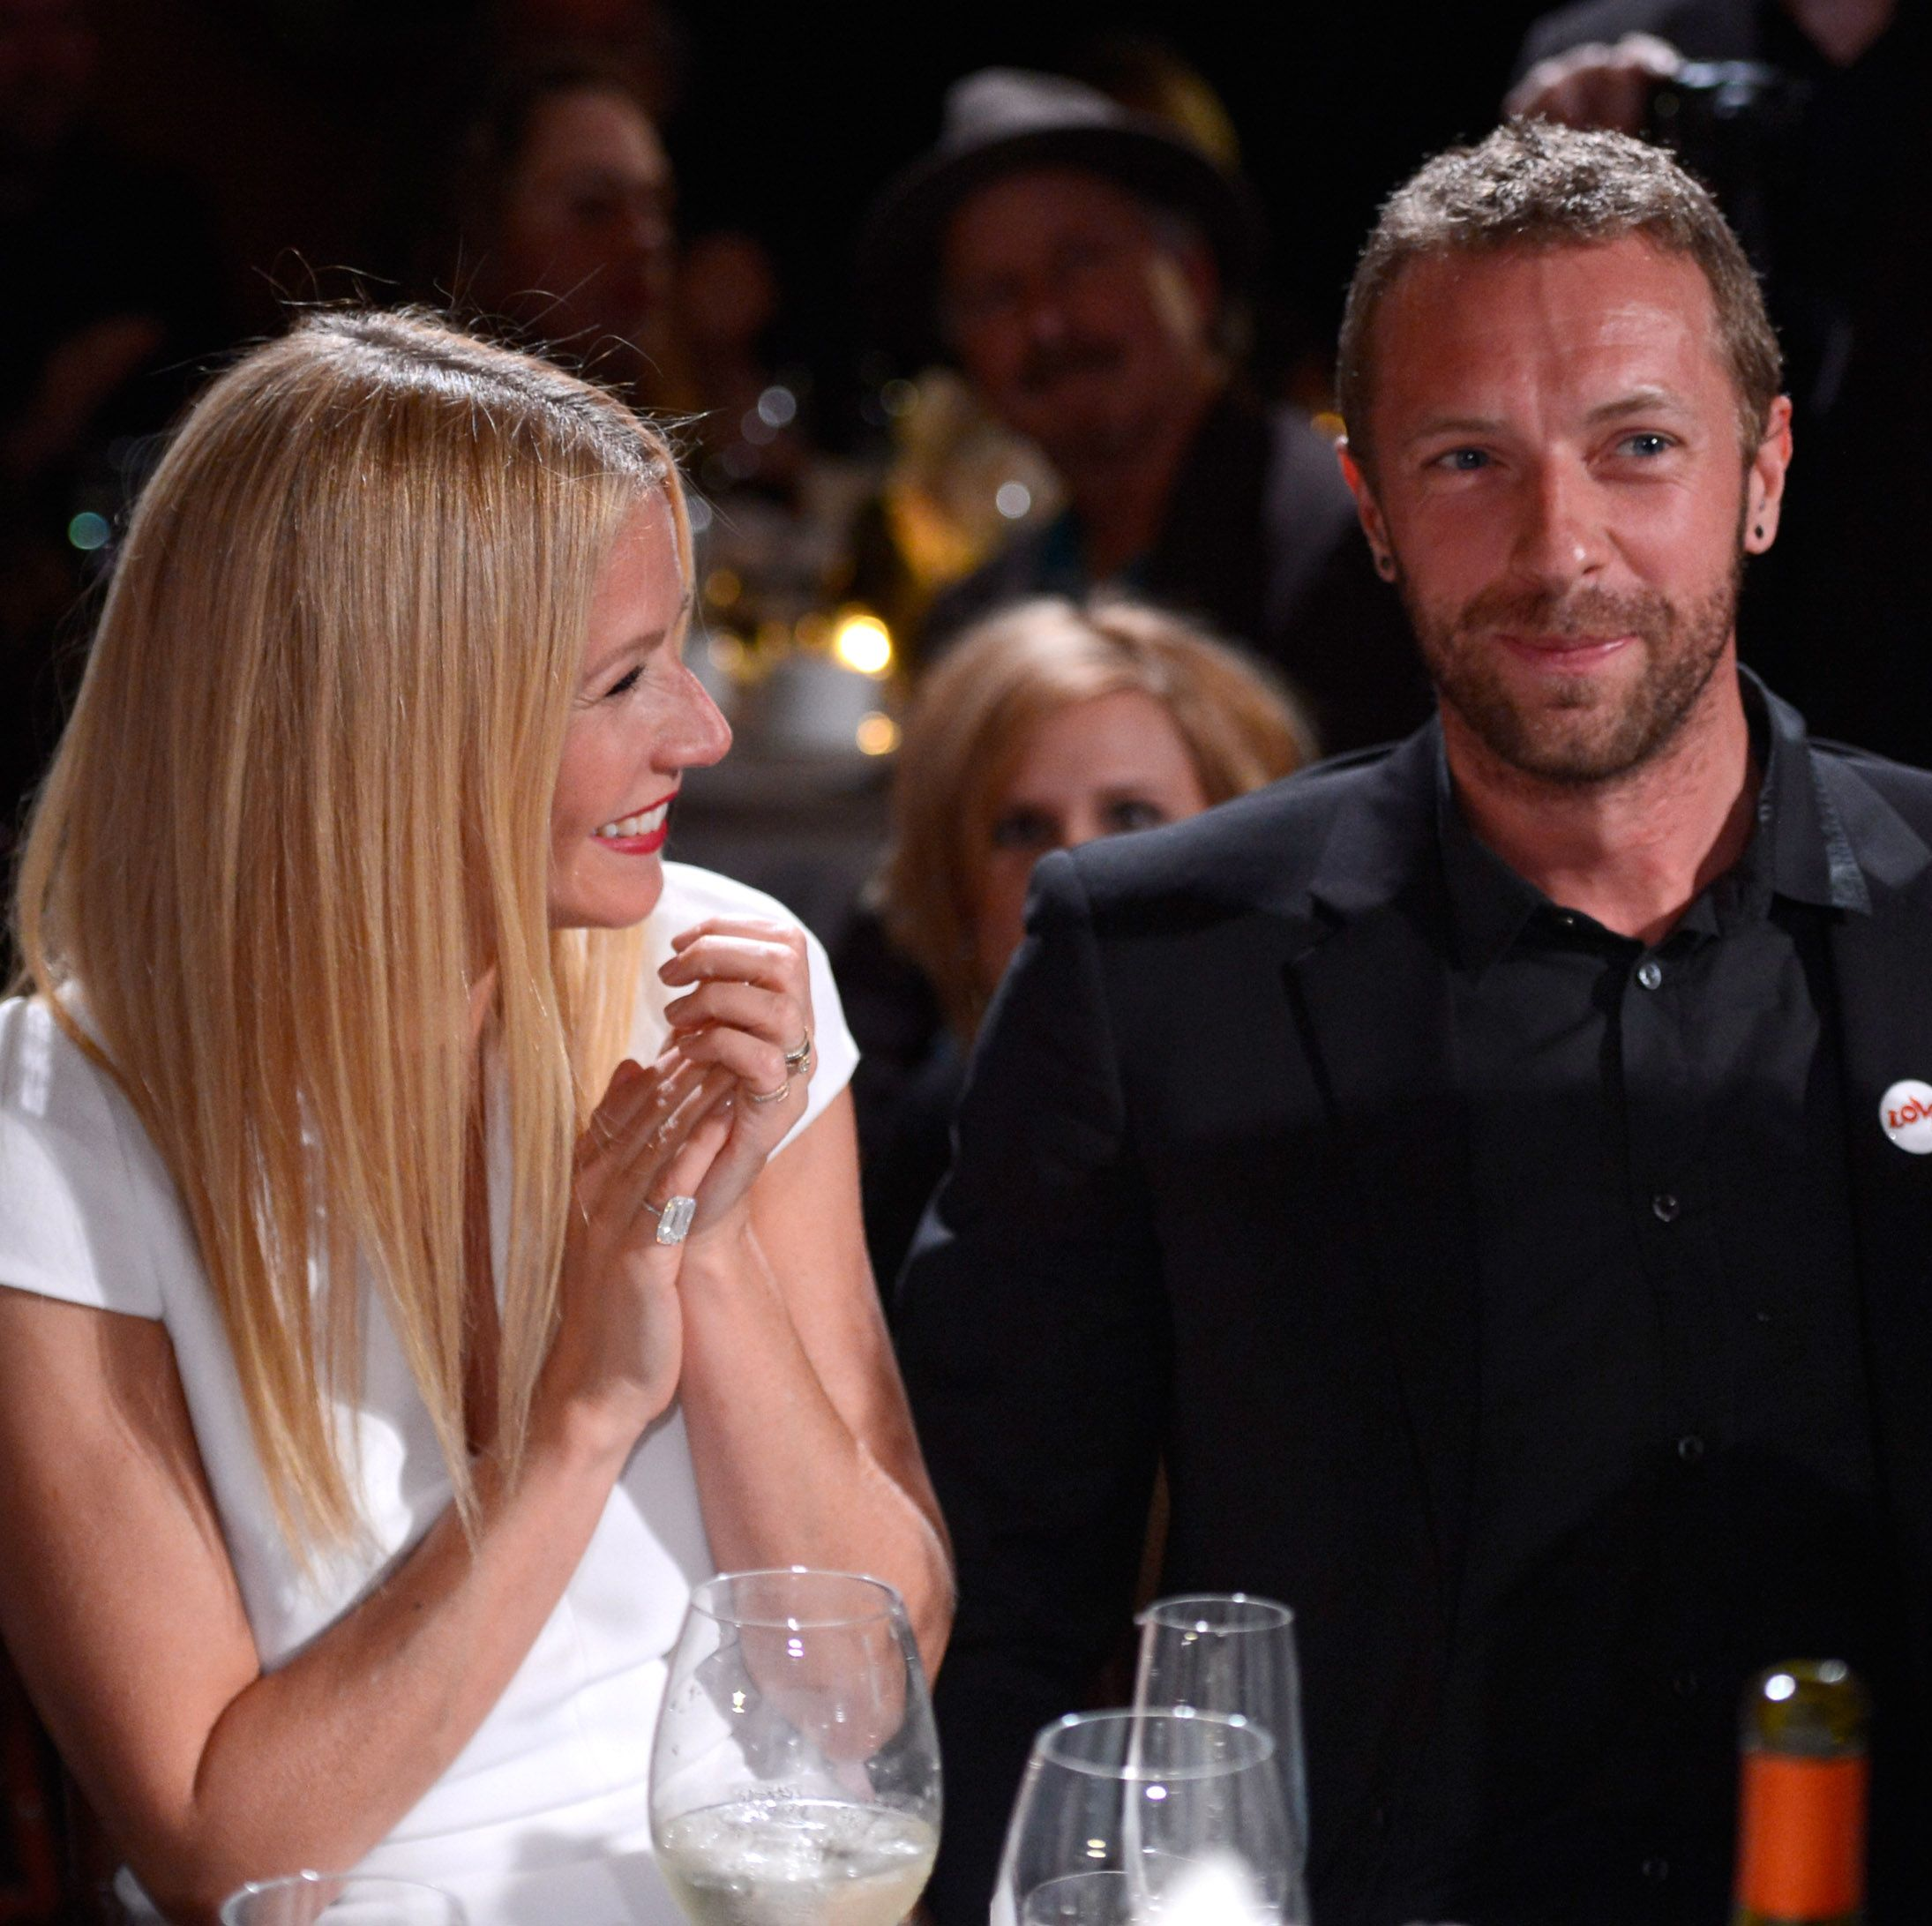 Gwyneth Paltrow and Chris Martin Fans were obsessed with Gwyneth and Chris when they first got together.